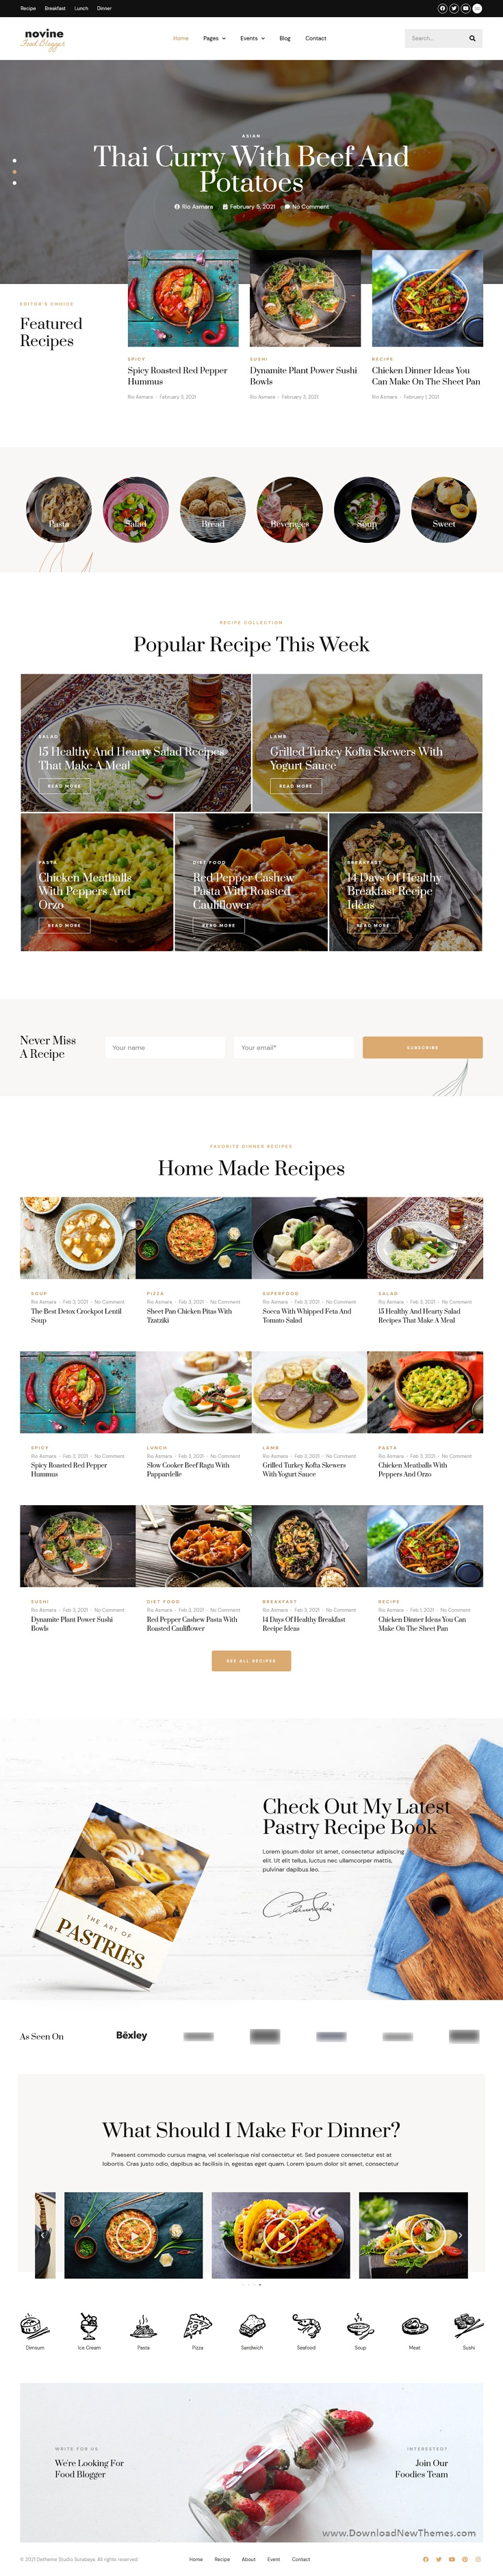 Food Recipe Blog and Magazine Template